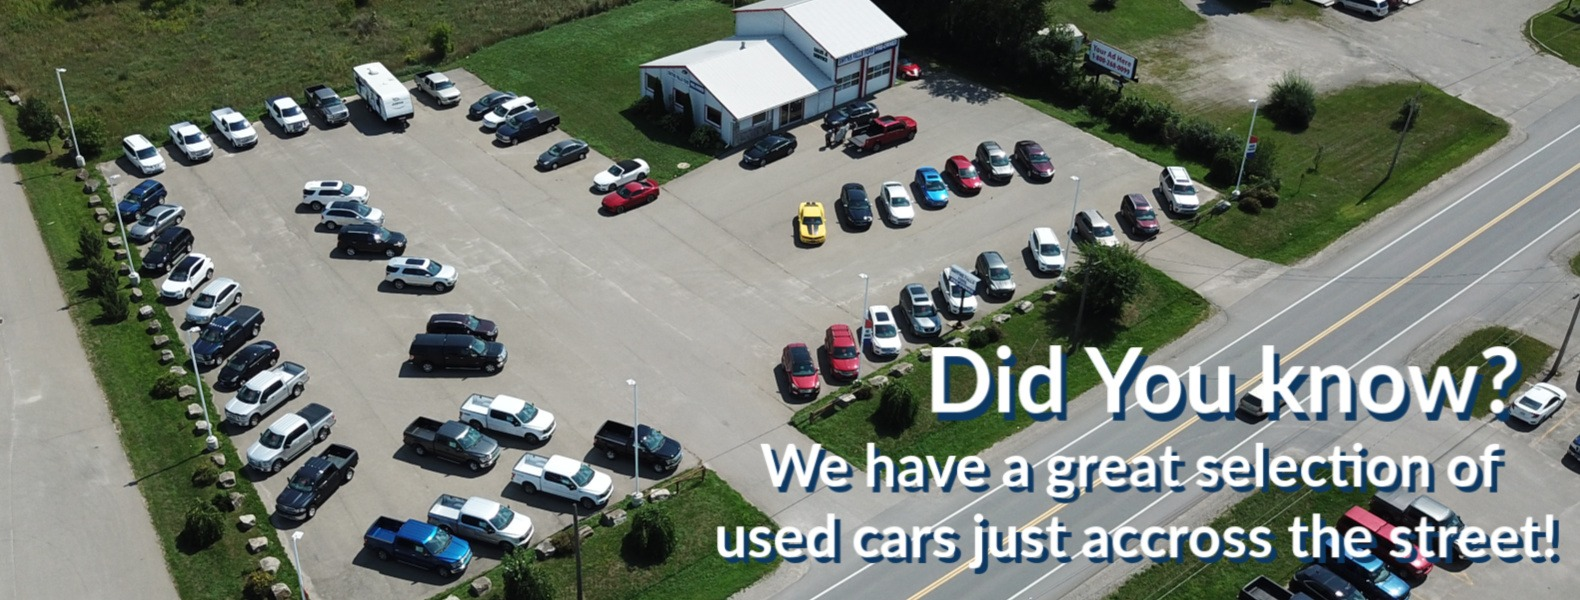 Used cars Smiths Falls Ford